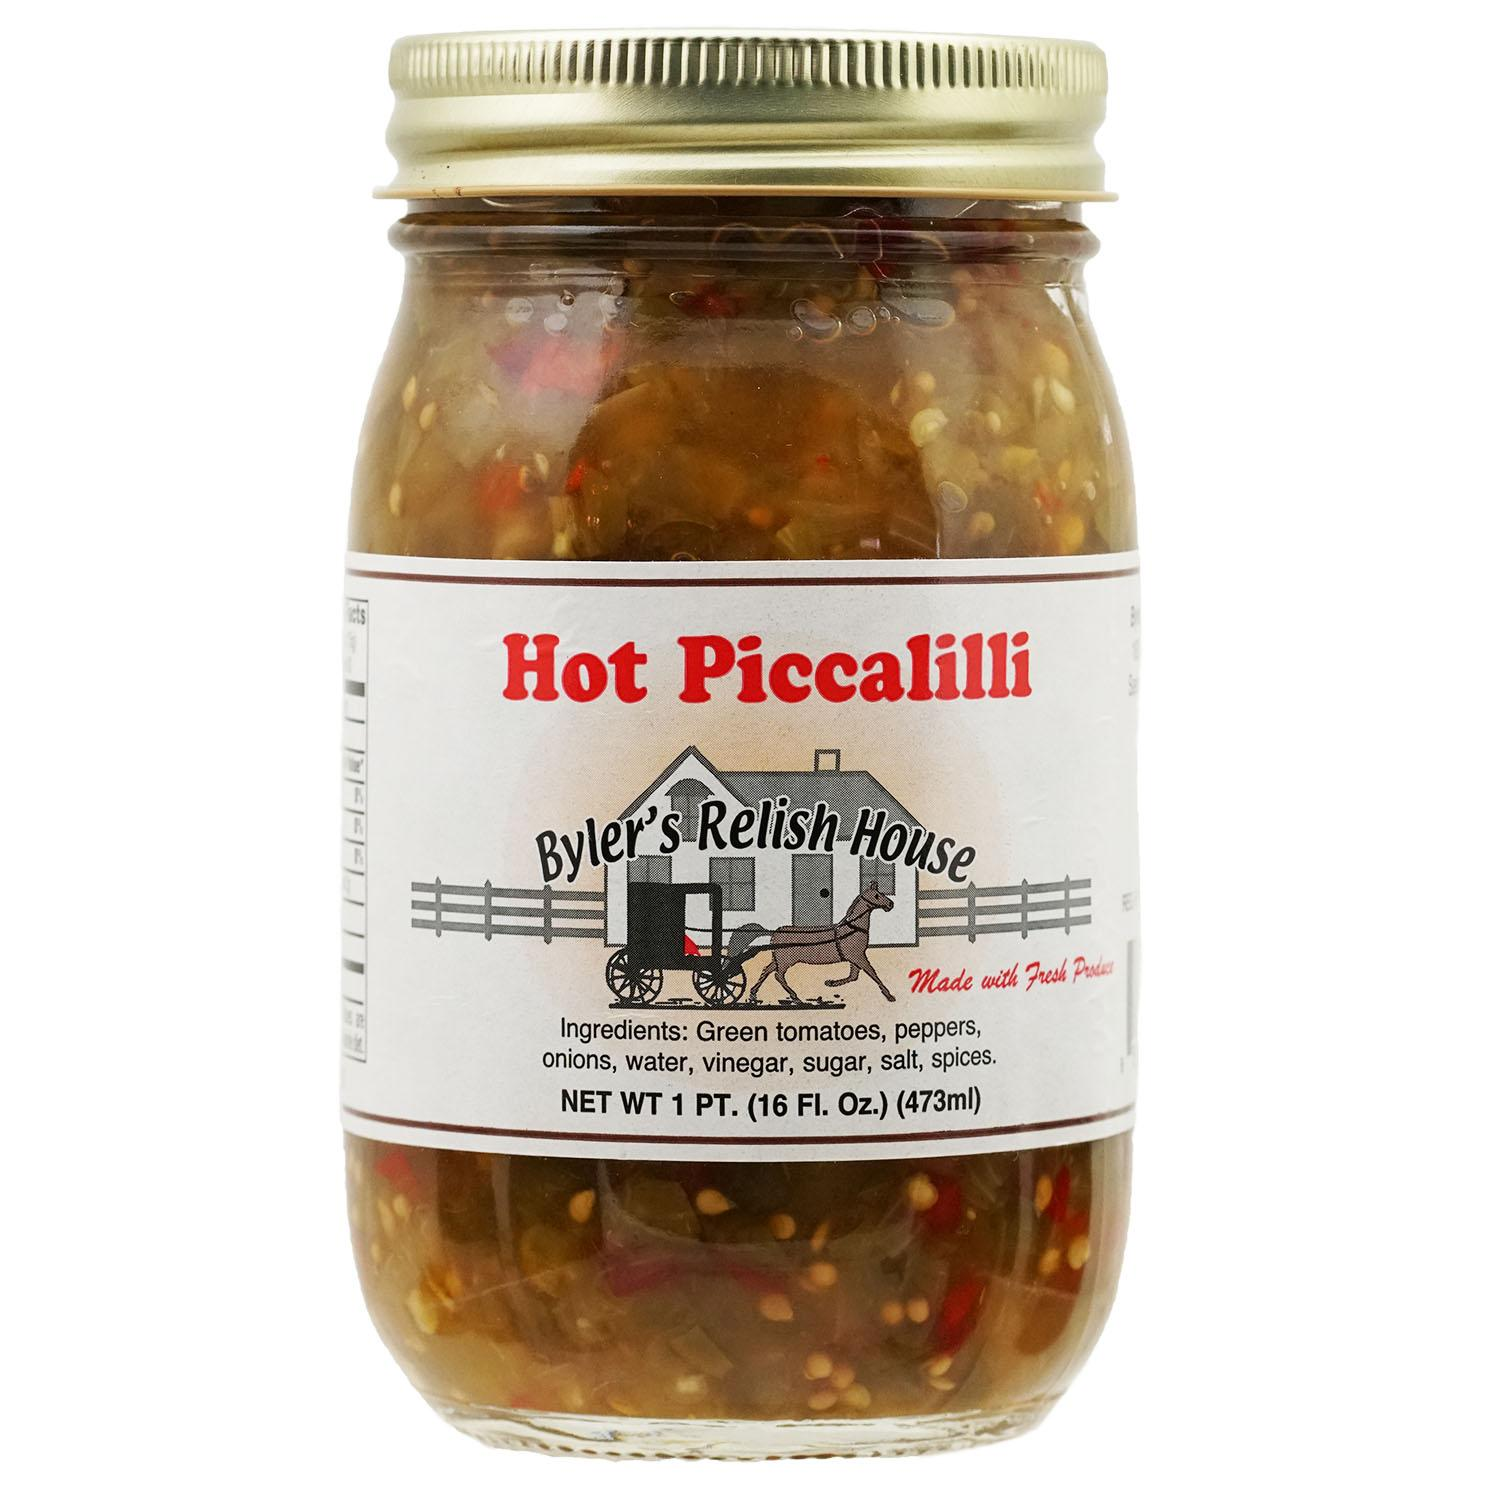 Byler's Relish House Homemade Amish Country Hot Piccalilli 16 oz. by Byler's Relish House